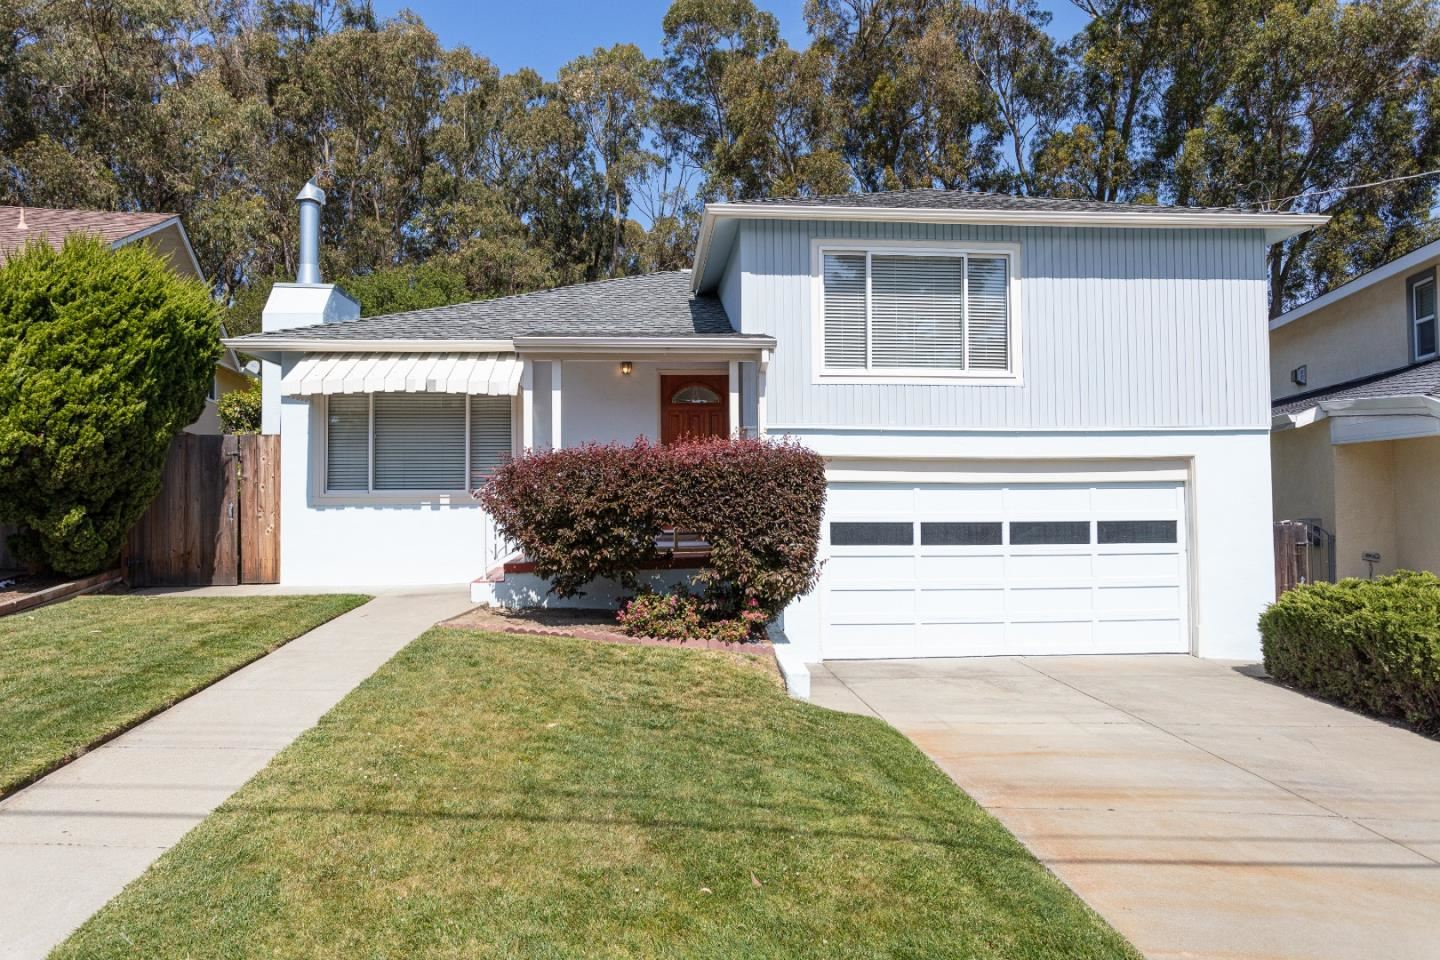 Photo for 20 Fairview Place, MILLBRAE, CA 94030 (MLS # ML81844239)